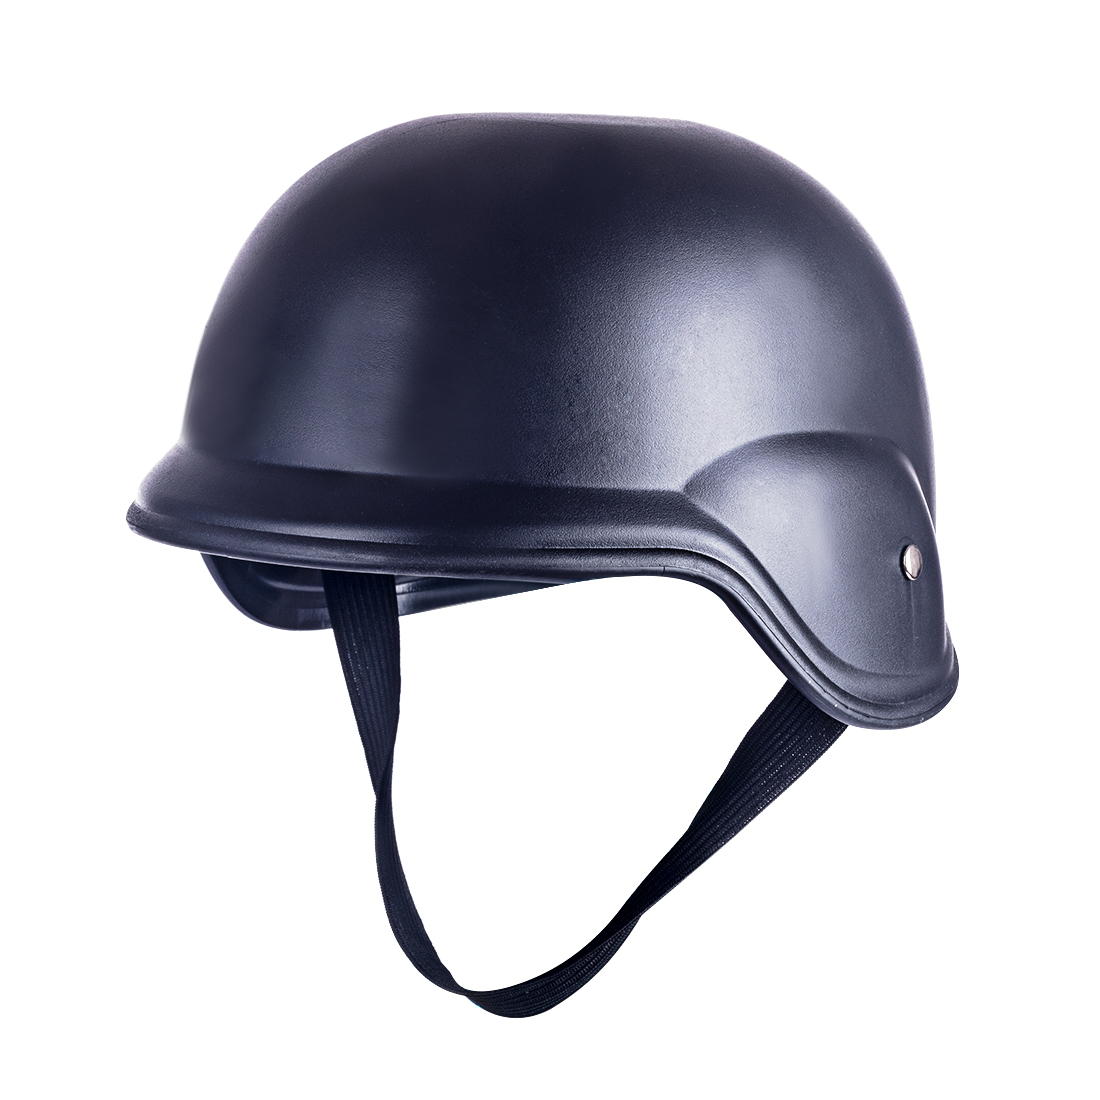 SWAT M88 Outdoor Activity Police Protective Helmet Occupation Pretend Toy - Without Sticker Type BlackSWAT M88 Outdoor Activity Police Protective Helmet Occupation Pretend Toy - Without Sticker Type Black